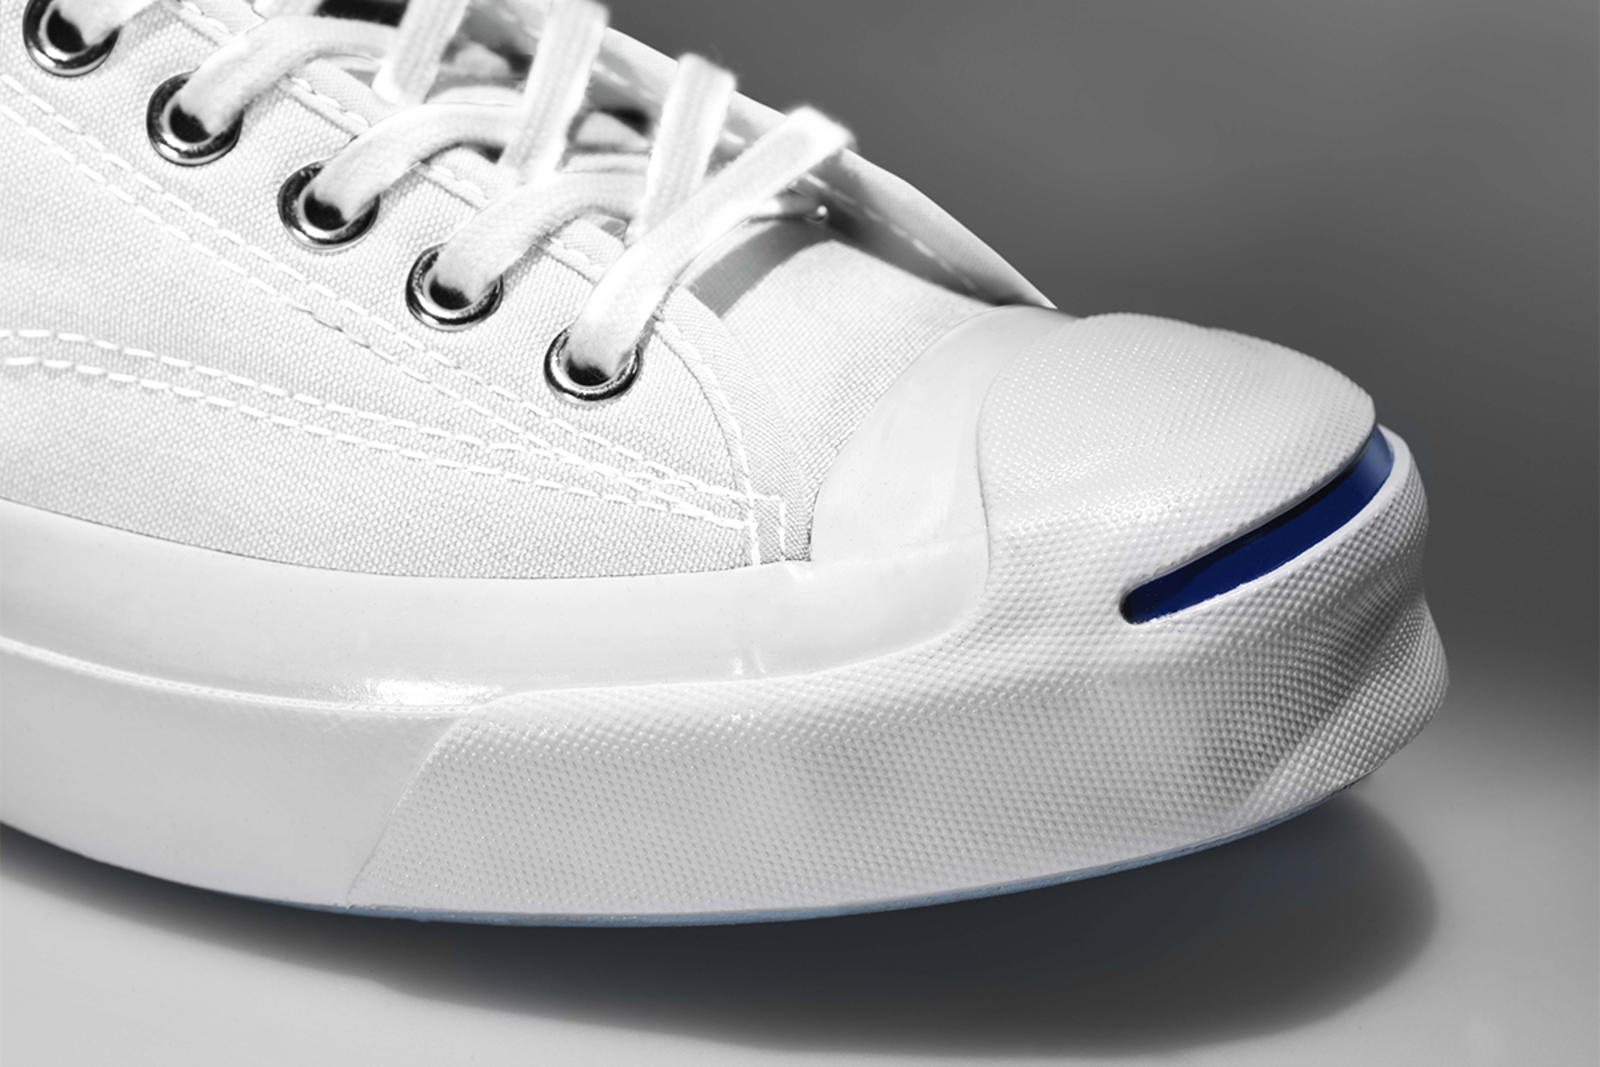 converse jack purcell gray 36zh  Mobile Gallery Image